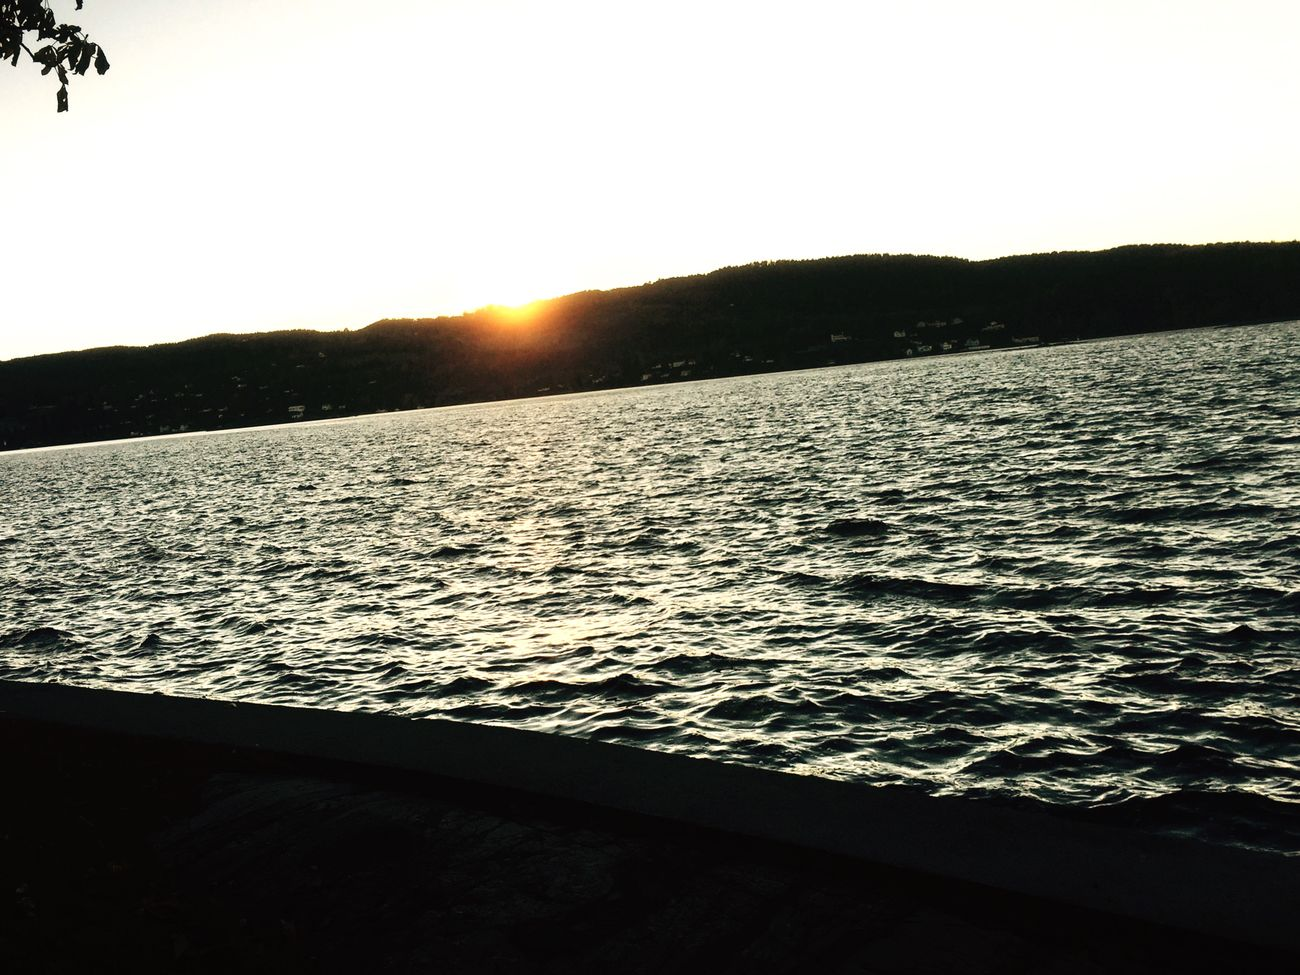 Drøbak Sunset Life Sunday